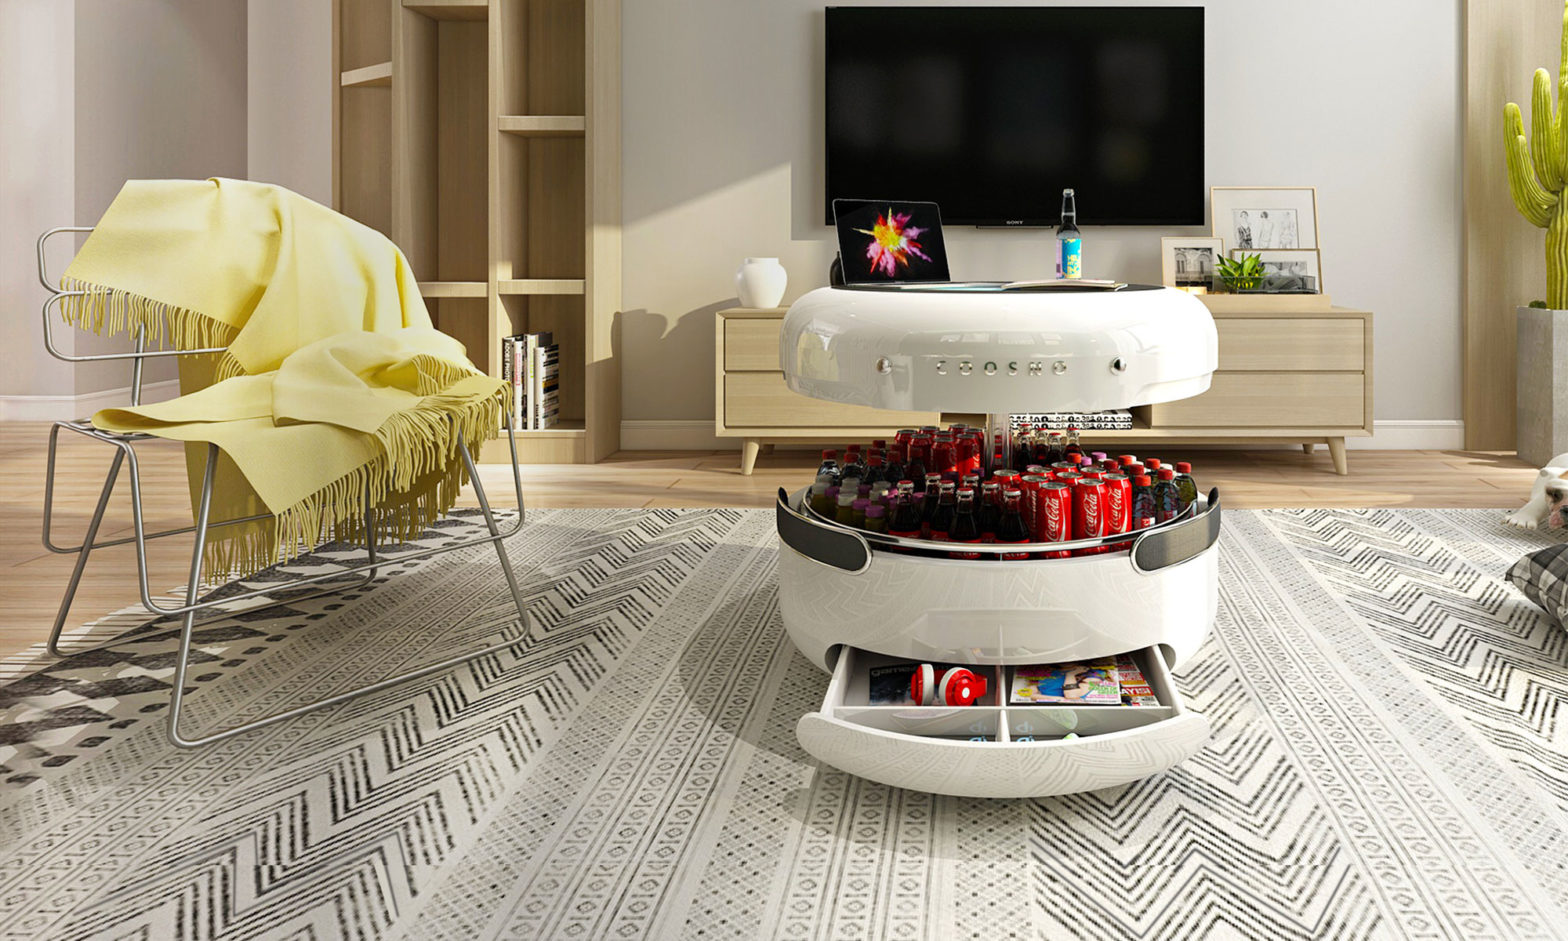 Refrigerator Coffee Table.This Ambitious Coffee Table Is Also A Fridge A Bluetooth Speaker A